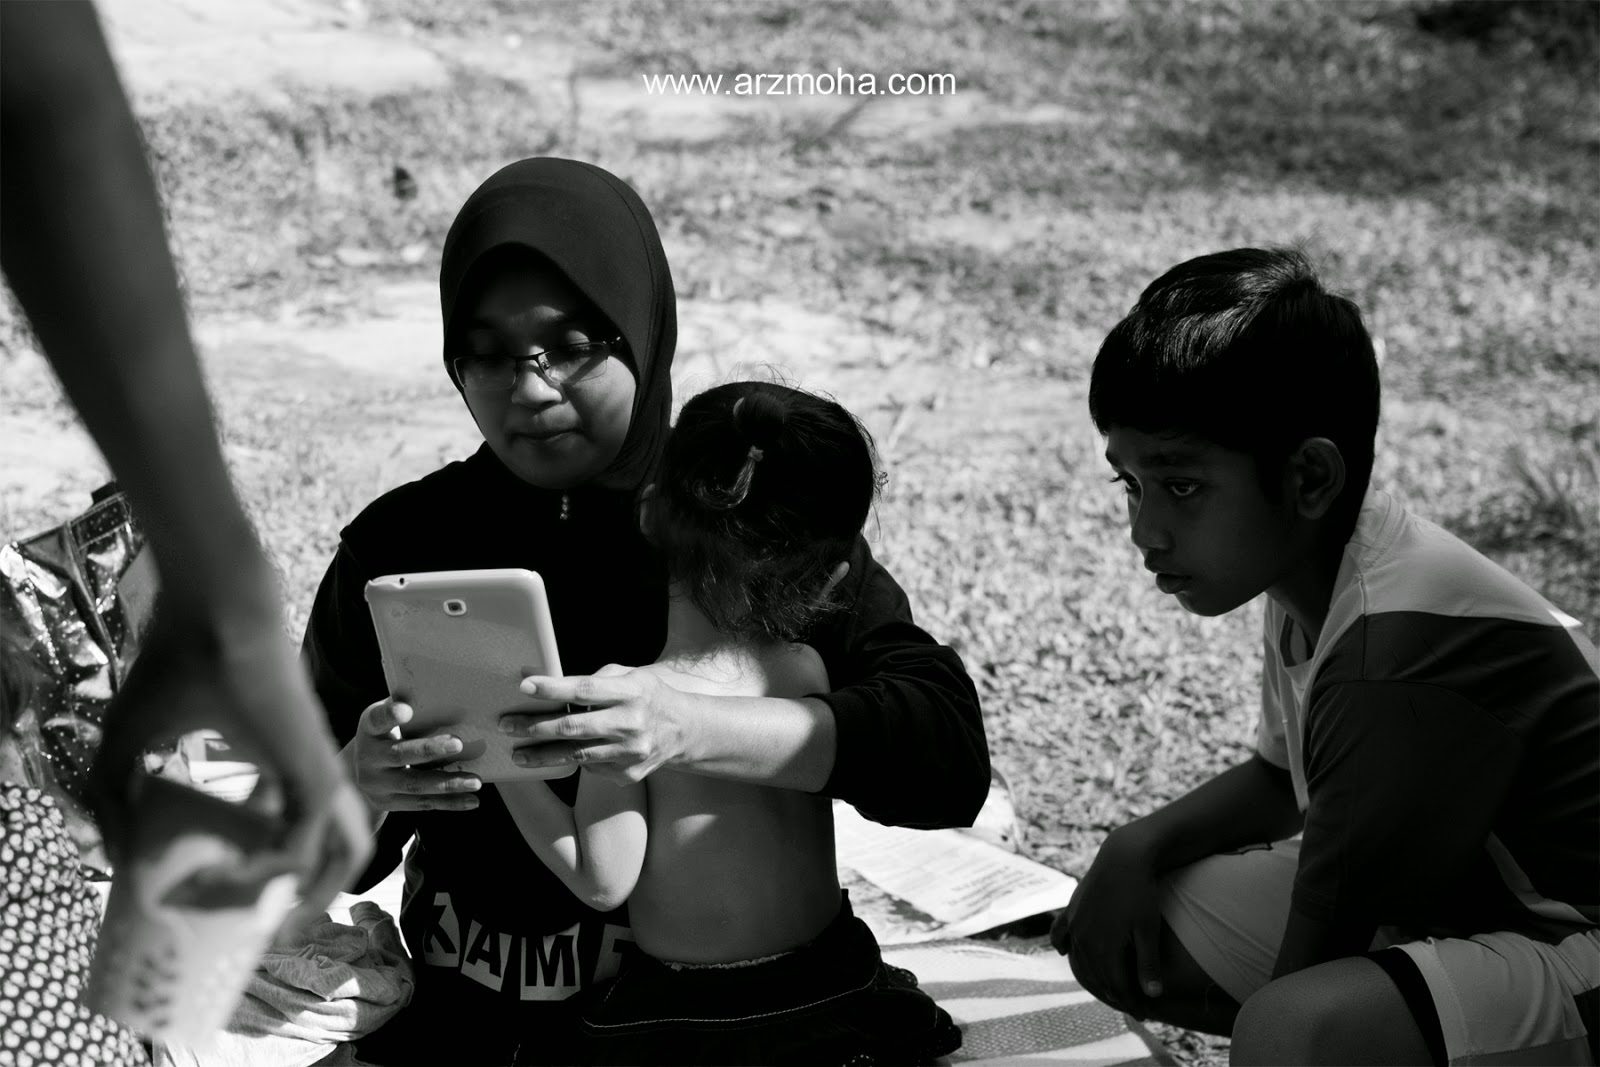 Black and White, Mak long, almira, cik puteri, daughter, girl, family day